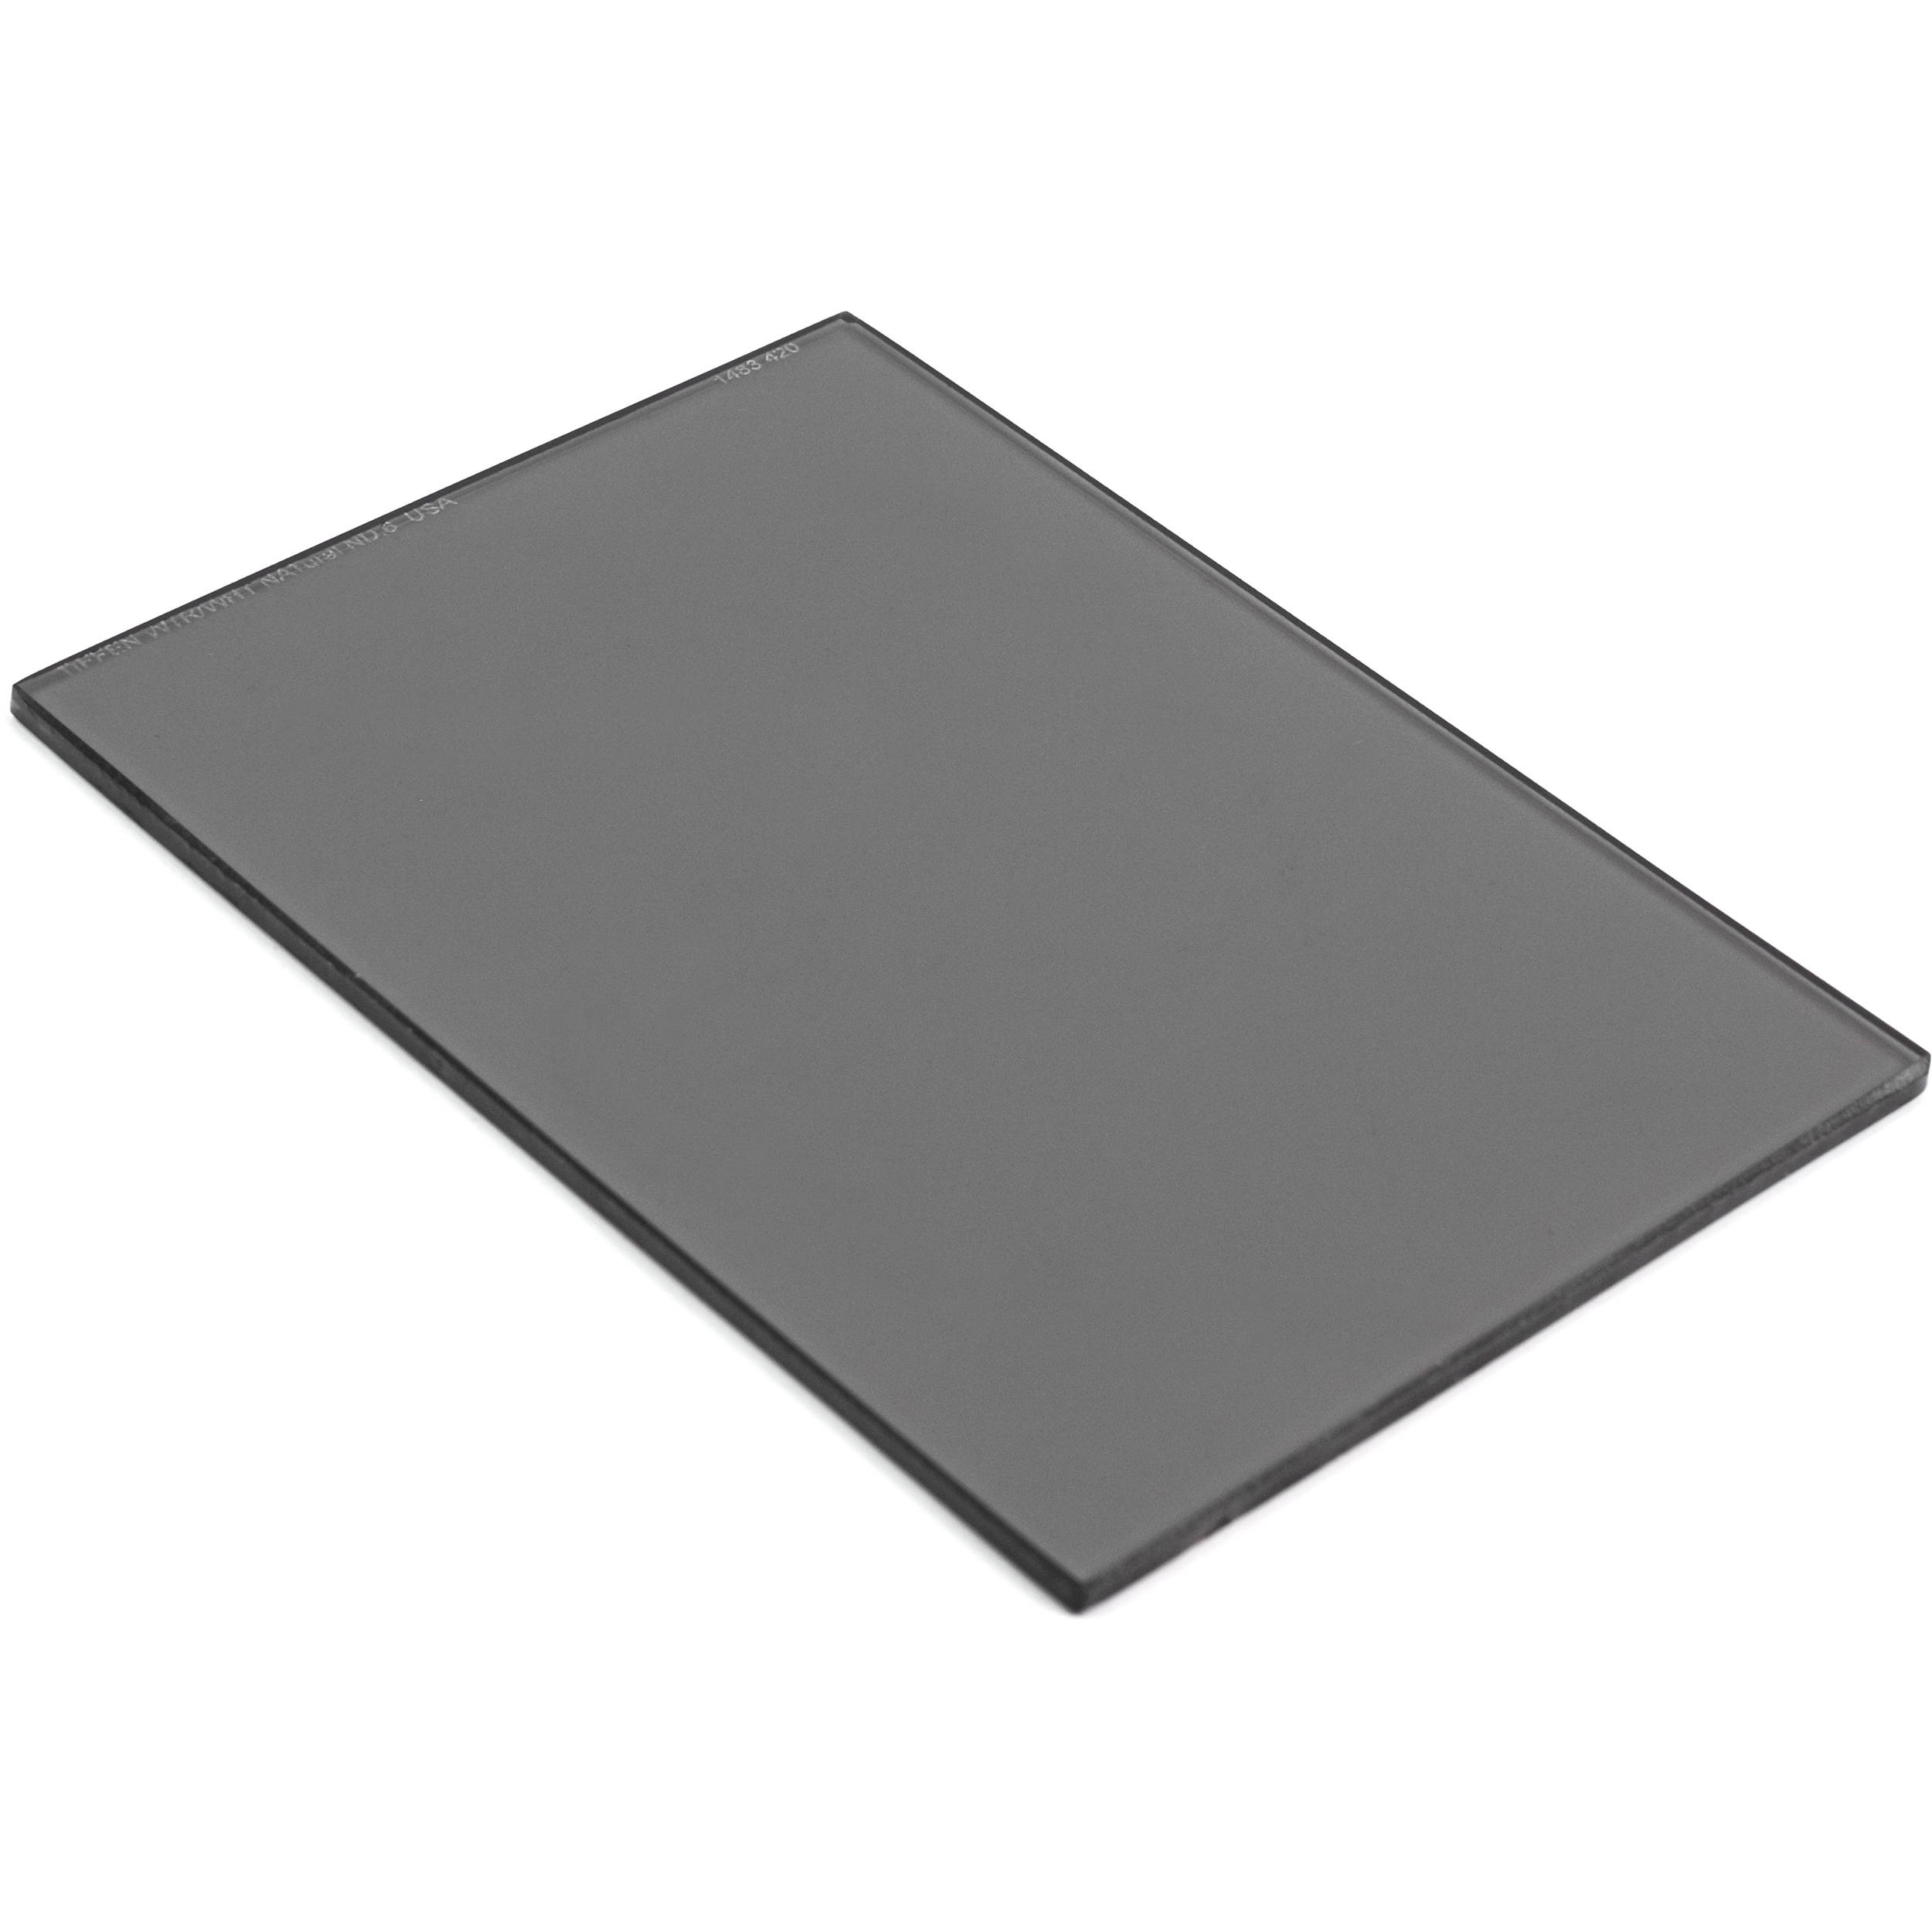 """Tiffen 4 x 5.65"""" Water White Glass NATural IRND 0.6 Filter (2-Stop)"""